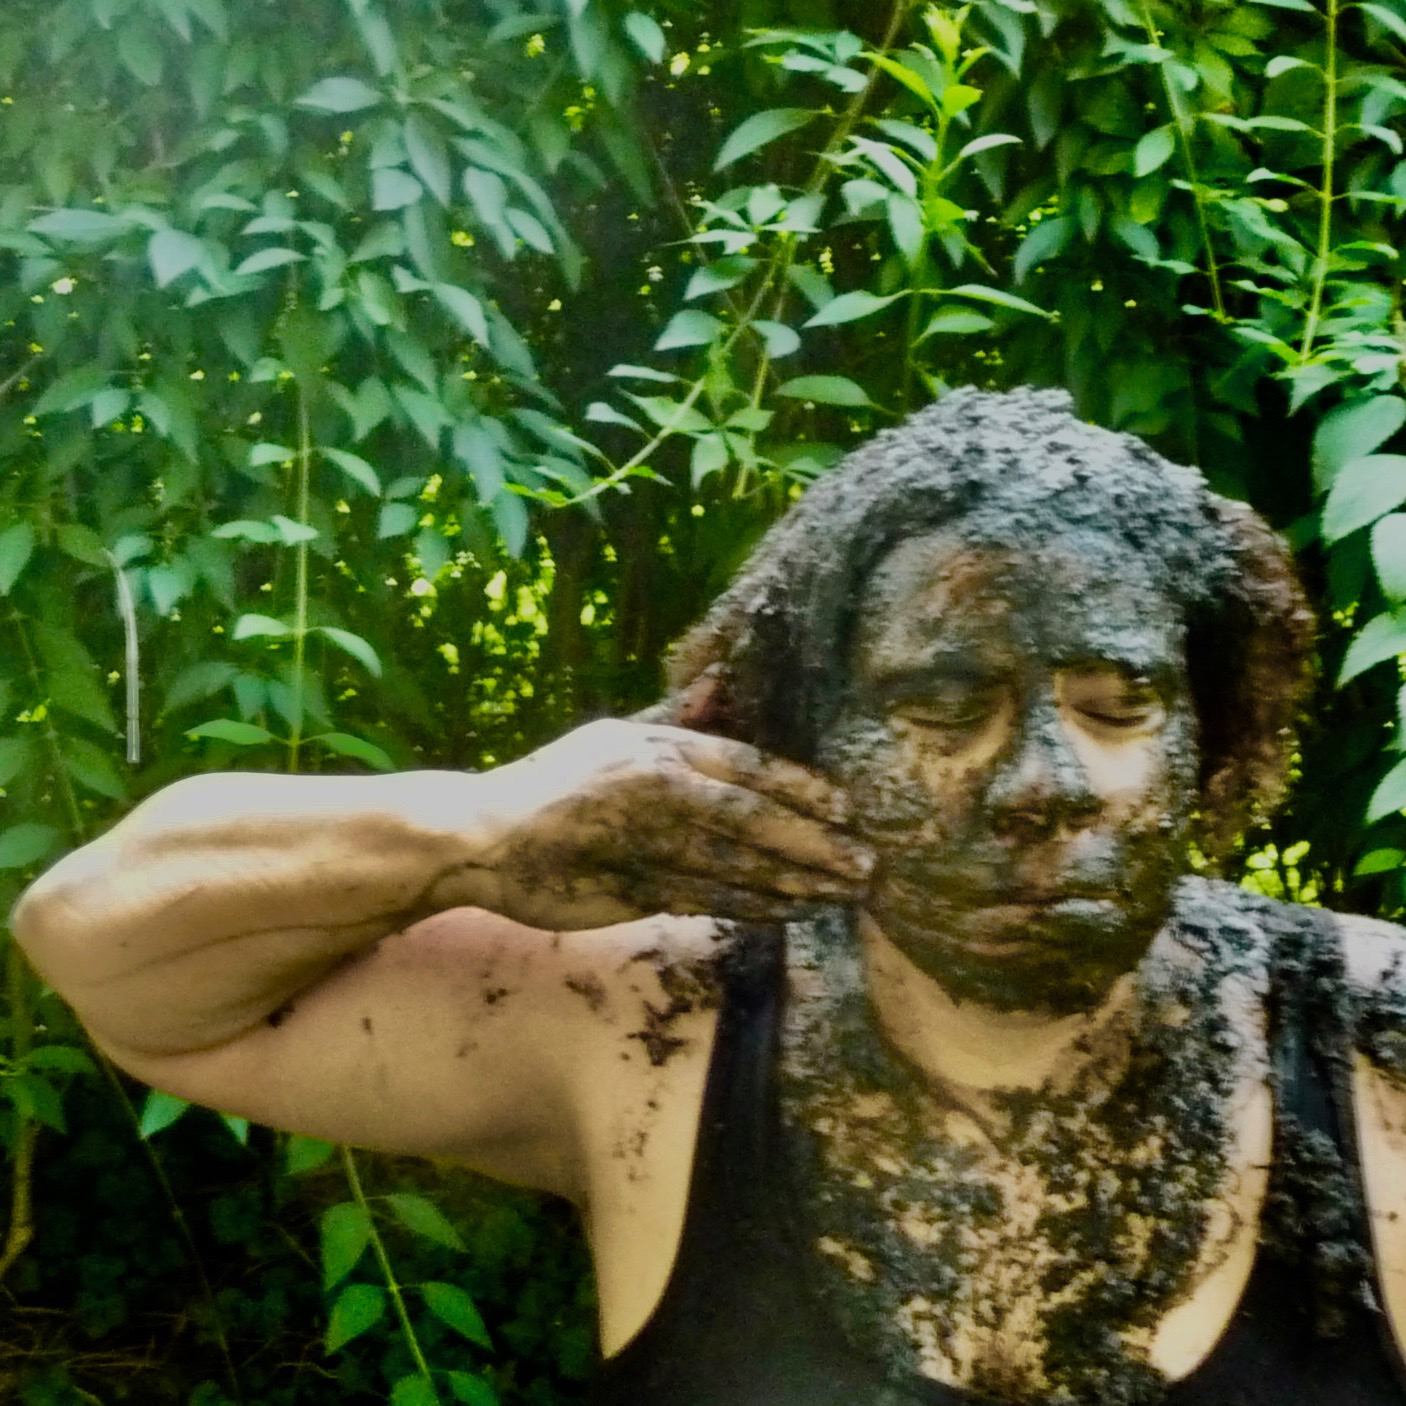 A woman of color smearing mud on her face